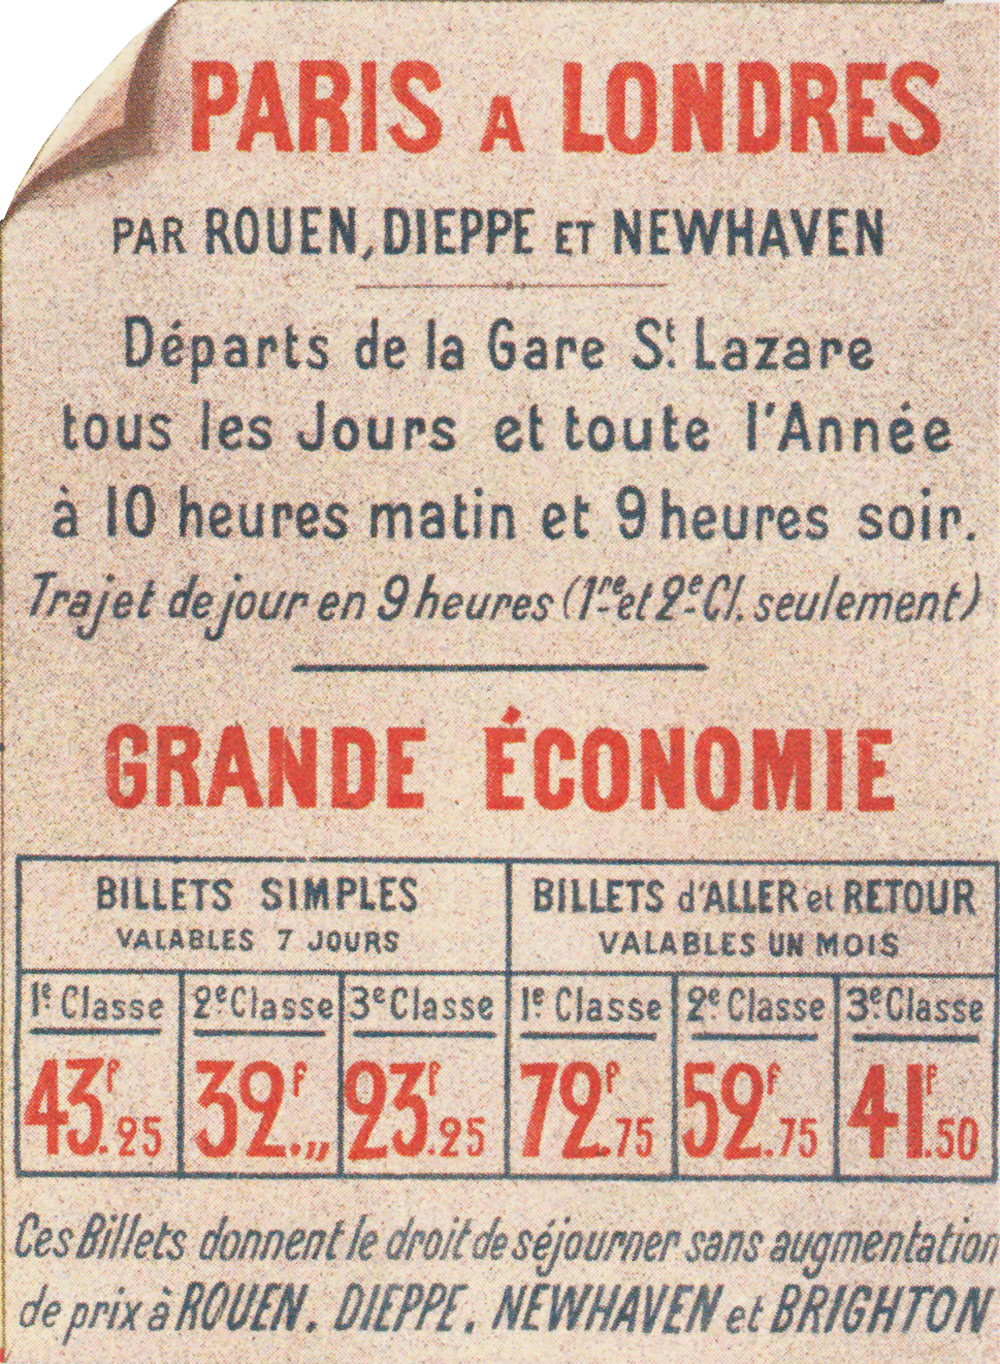 Detail of a poster for the route between Paris and London by train and boat, circa 1900